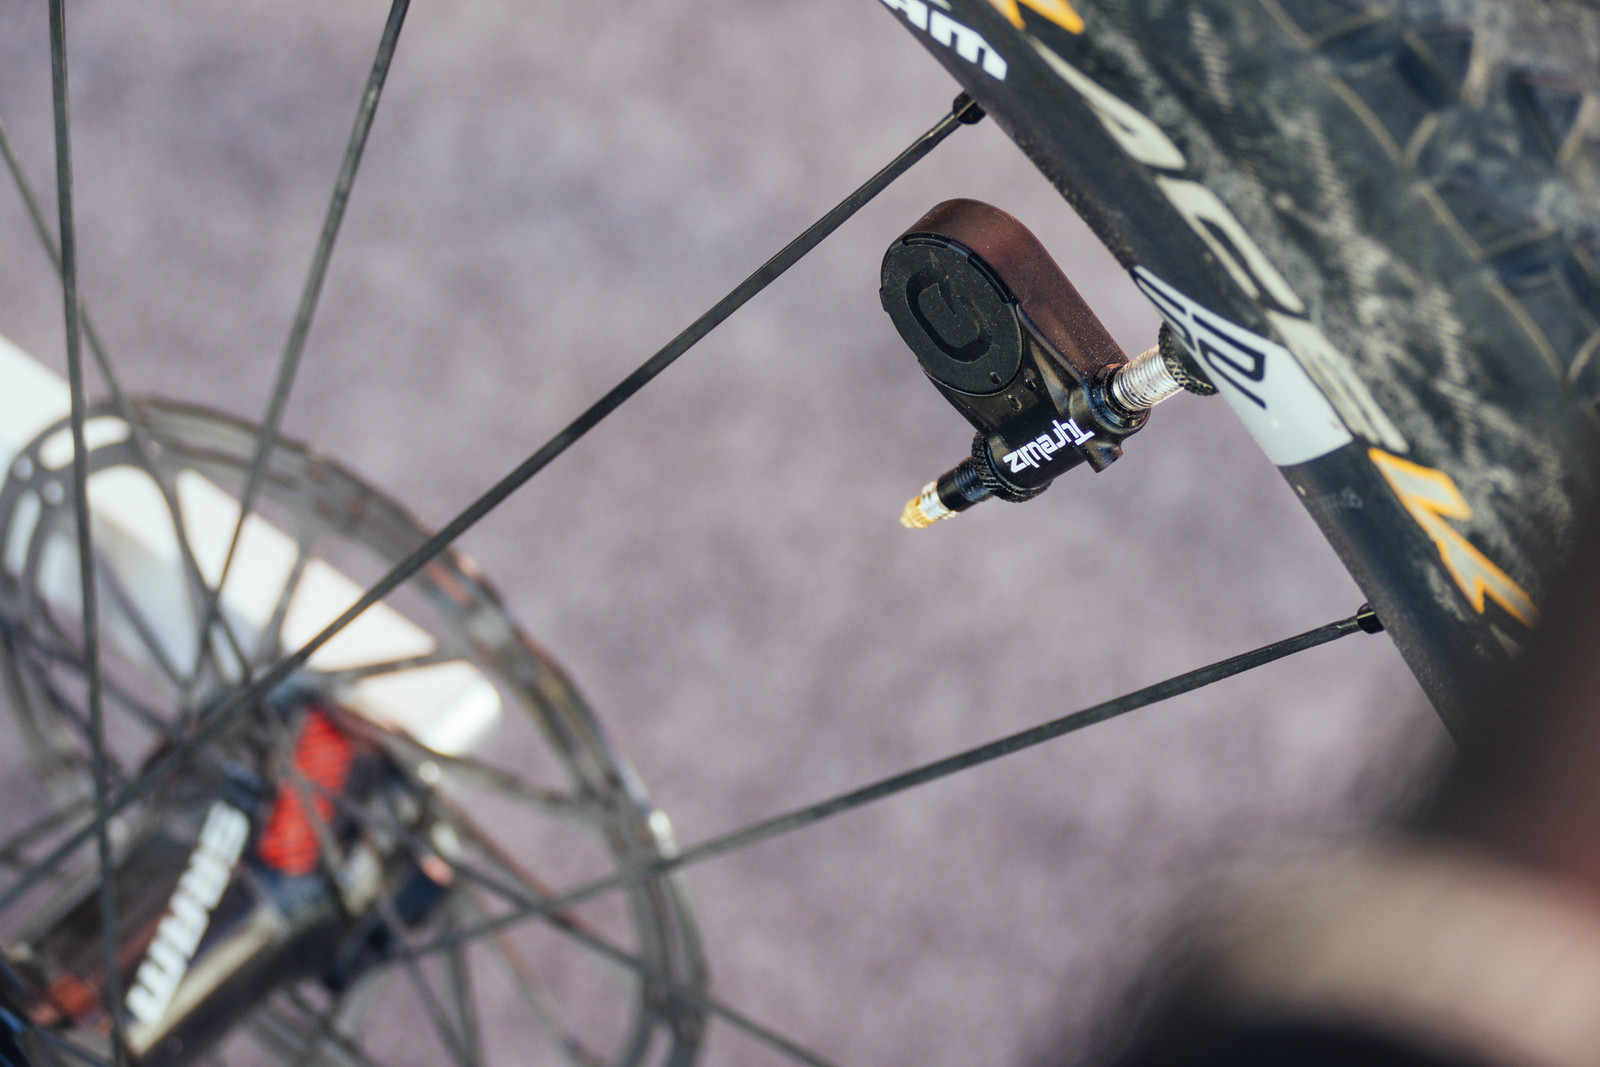 Quarq's TyreWiz Shows Real-Time Tire Pressures - Sea Otter Classic